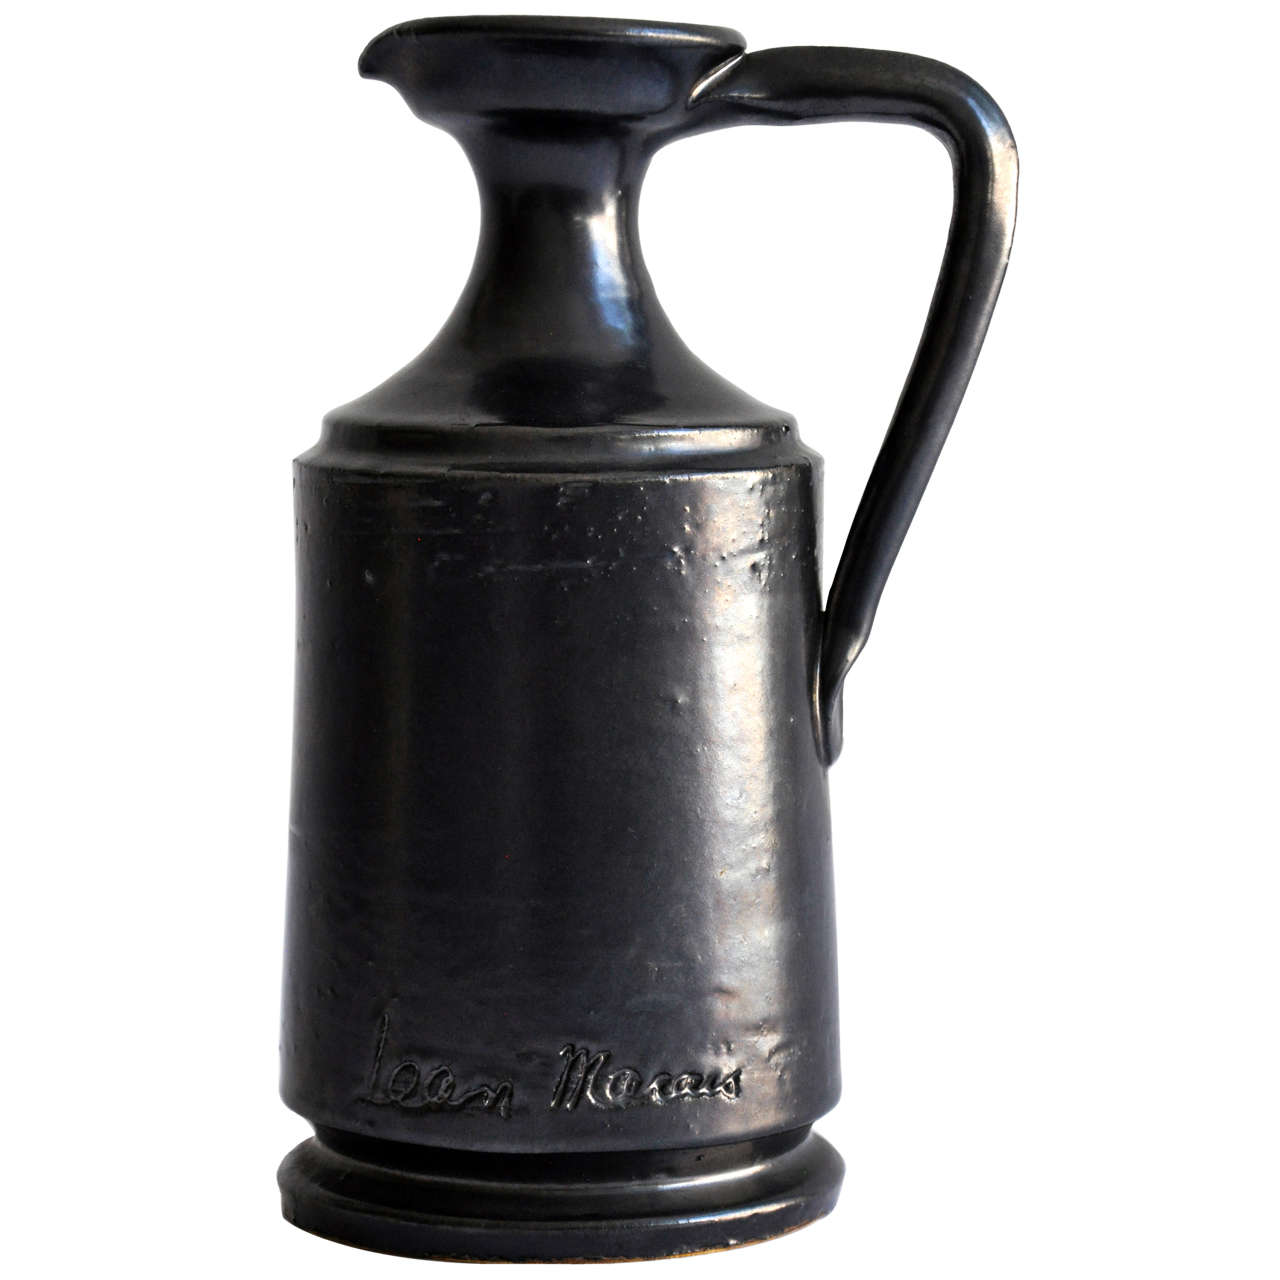 tall ceramic pitcher by jean marais for sale at stdibs - tall ceramic pitcher by jean marais